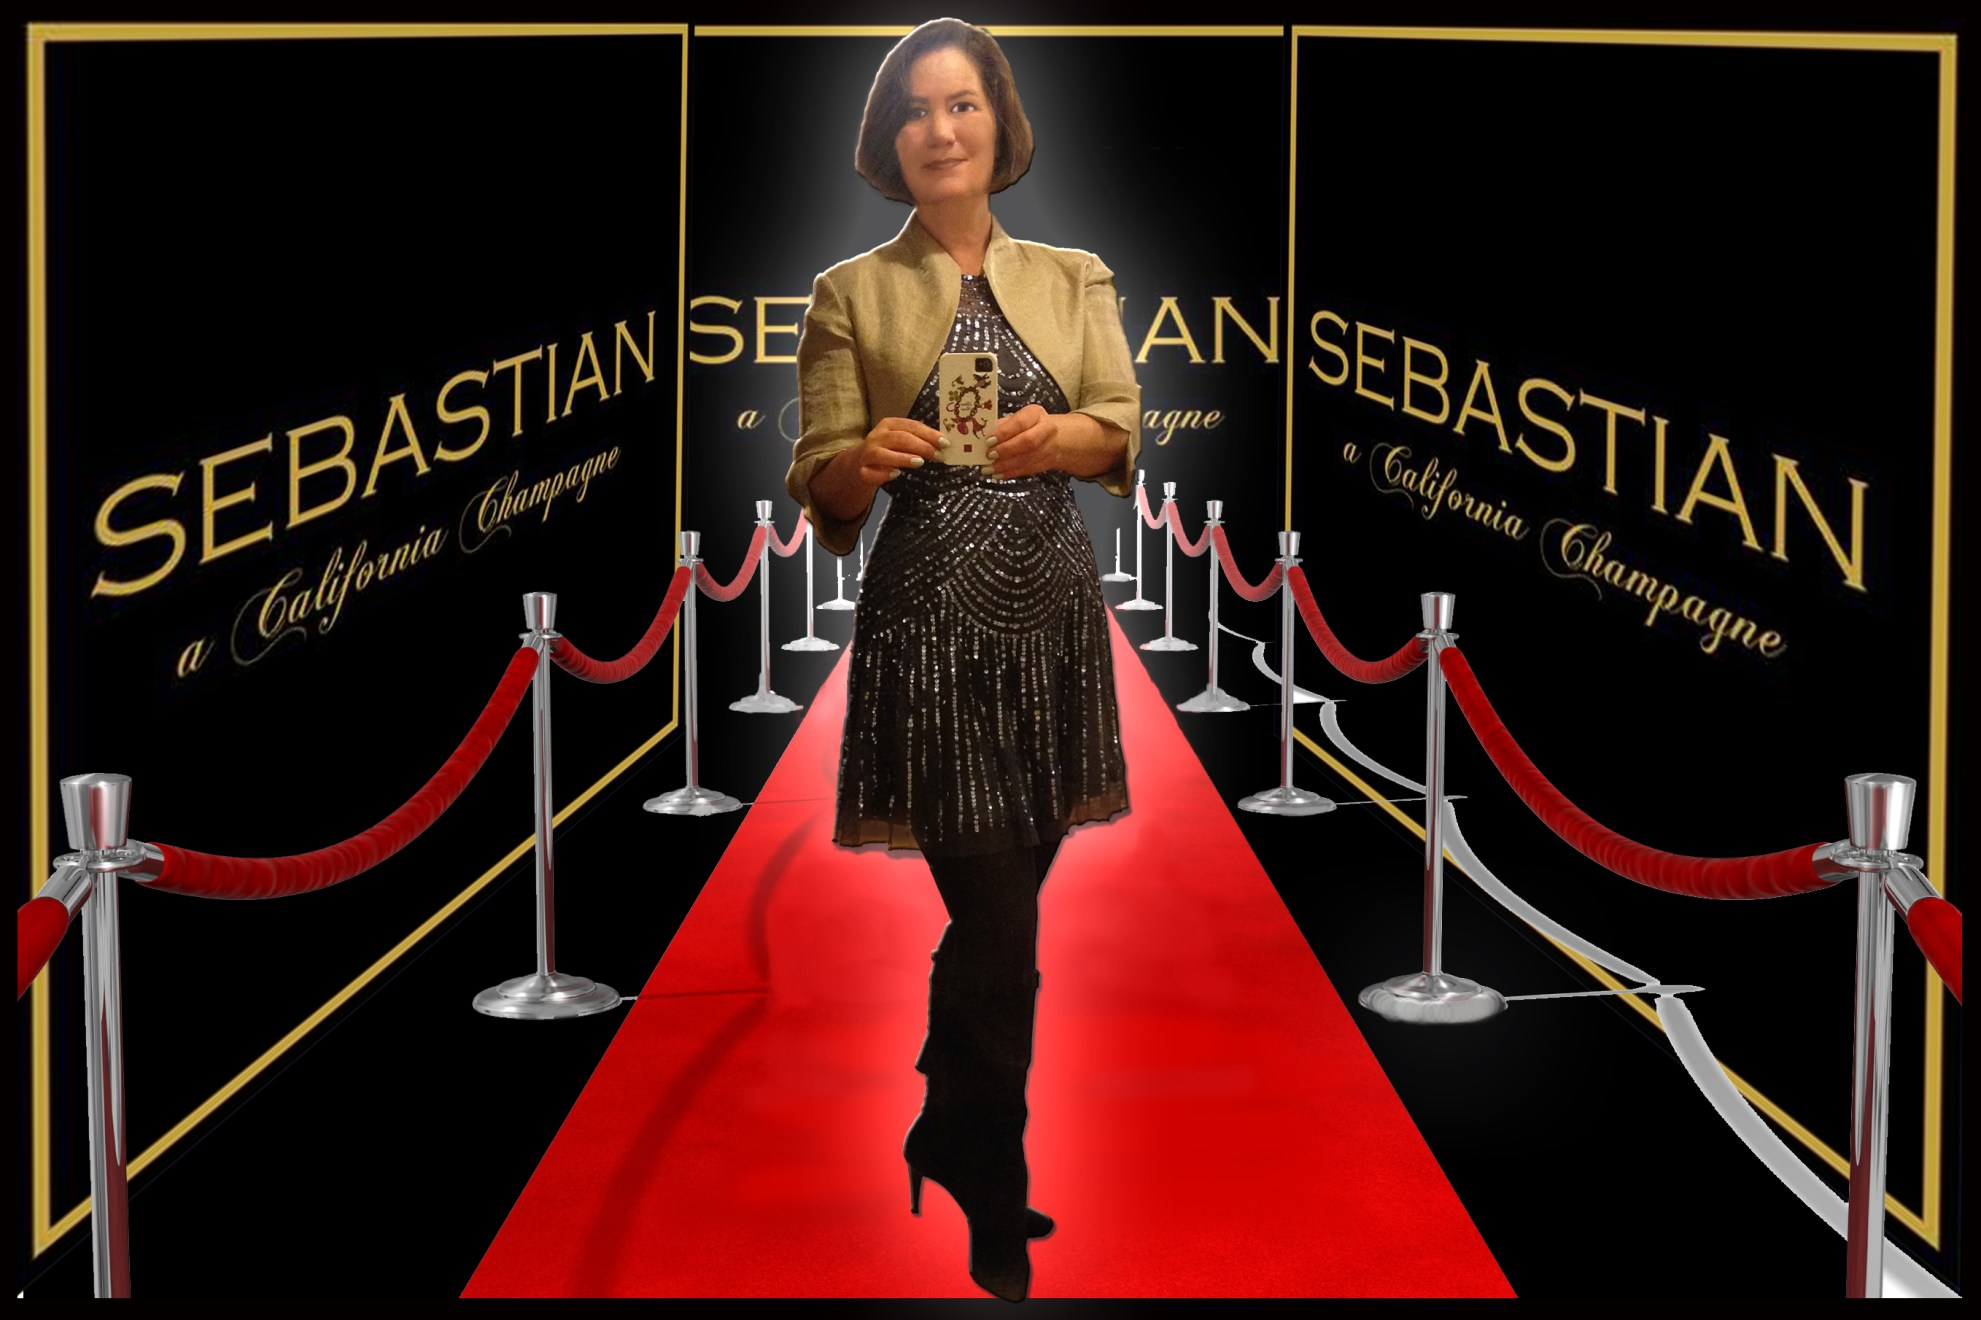 China Rose ~ Movie Reviews & More event, Capitol Grille, Beverly Hills, CA, circa 2014